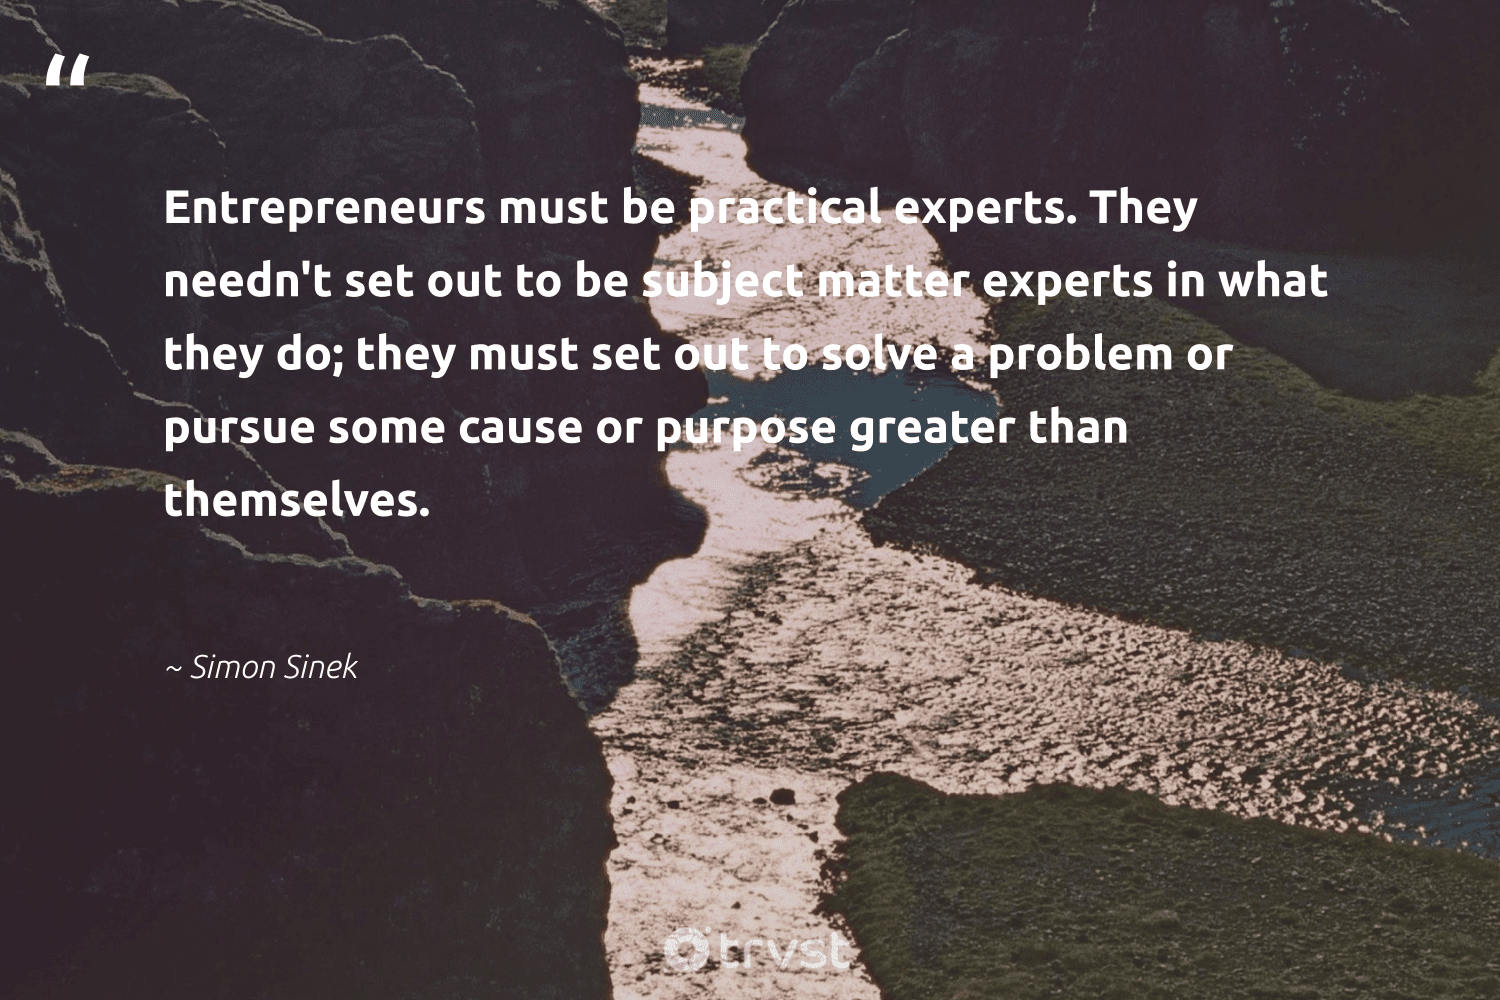 """""""Entrepreneurs must be practical experts. They needn't set out to be subject matter experts in what they do; they must set out to solve a problem or pursue some cause or purpose greater than themselves.""""  - Simon Sinek #trvst #quotes #cause #purpose #nonprofitorganization #changemakers #workingtogether #bethechange #humanitarian #nevergiveup #weareallone #takeaction"""